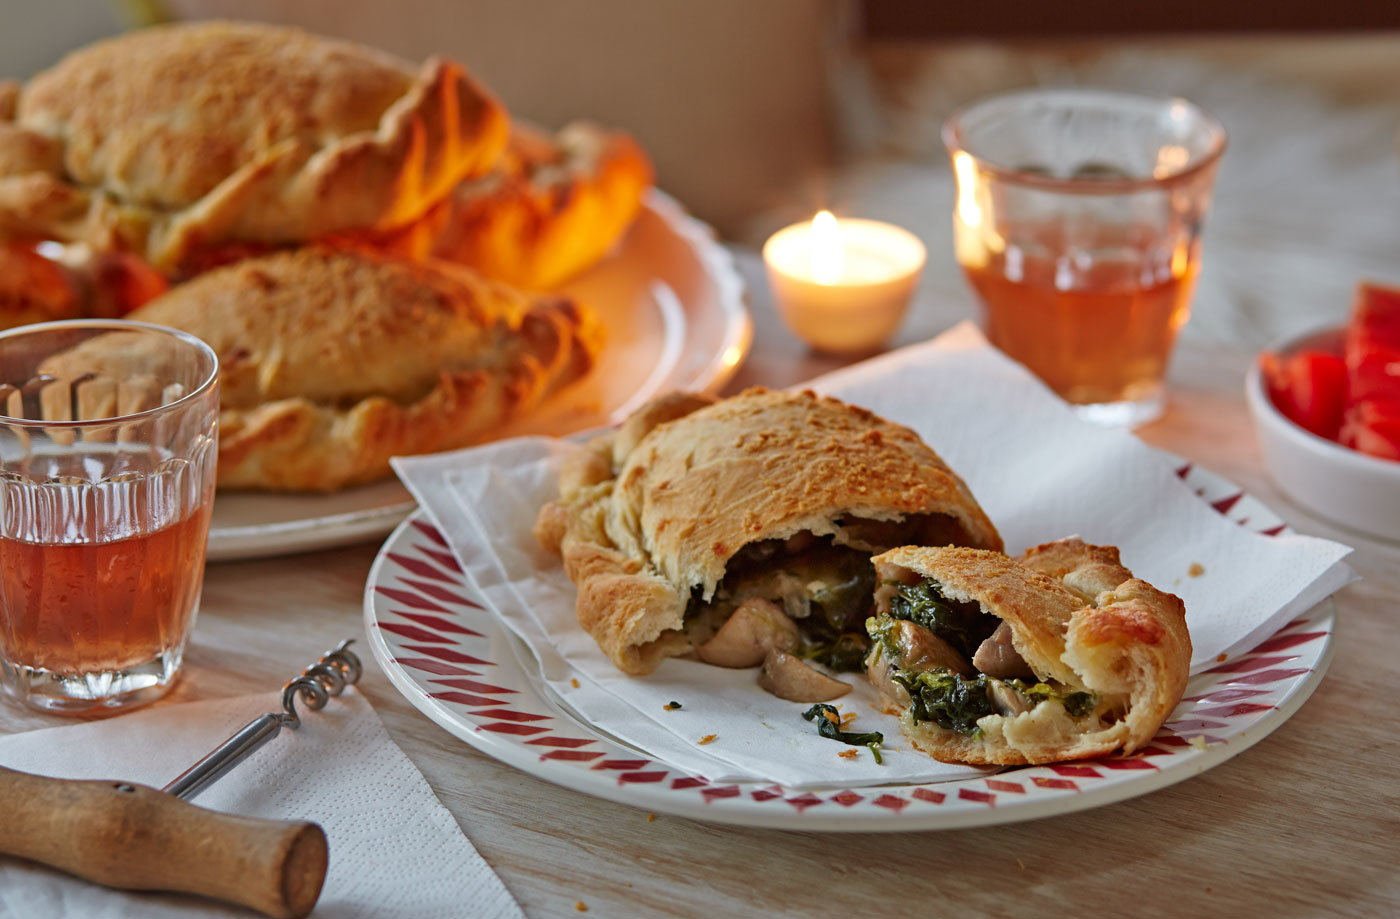 Cheesy mushroom and spinach calzone recipe